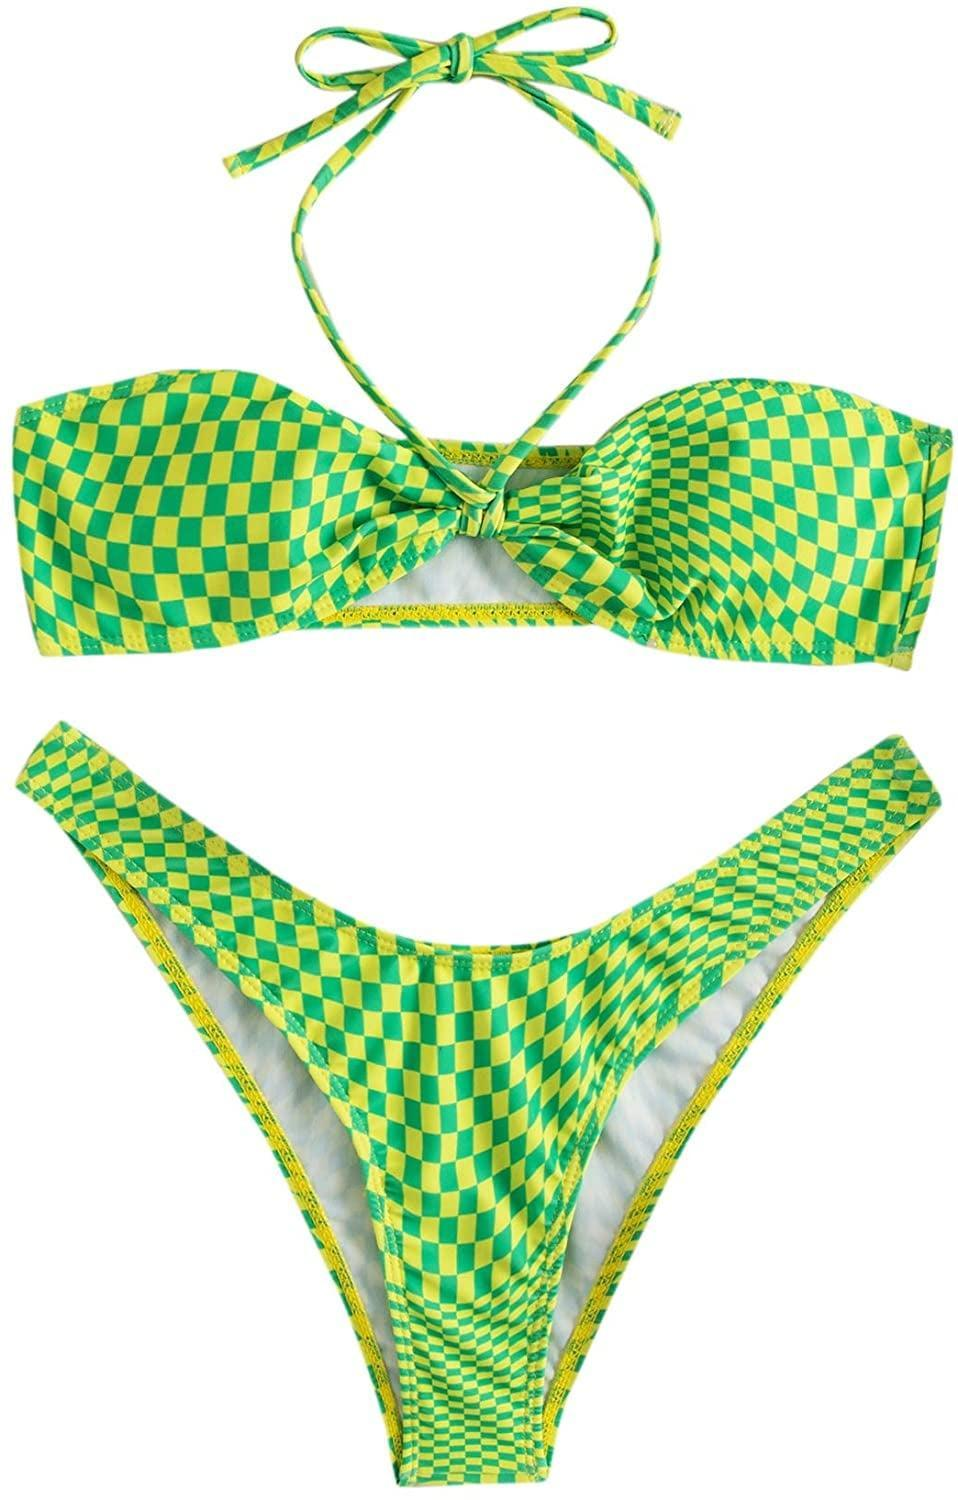 <p>This <span>Soly Hux Checkered Halter Swimsuit</span> ($22-$24) is a bright and cheerful pick for pool parties.</p>